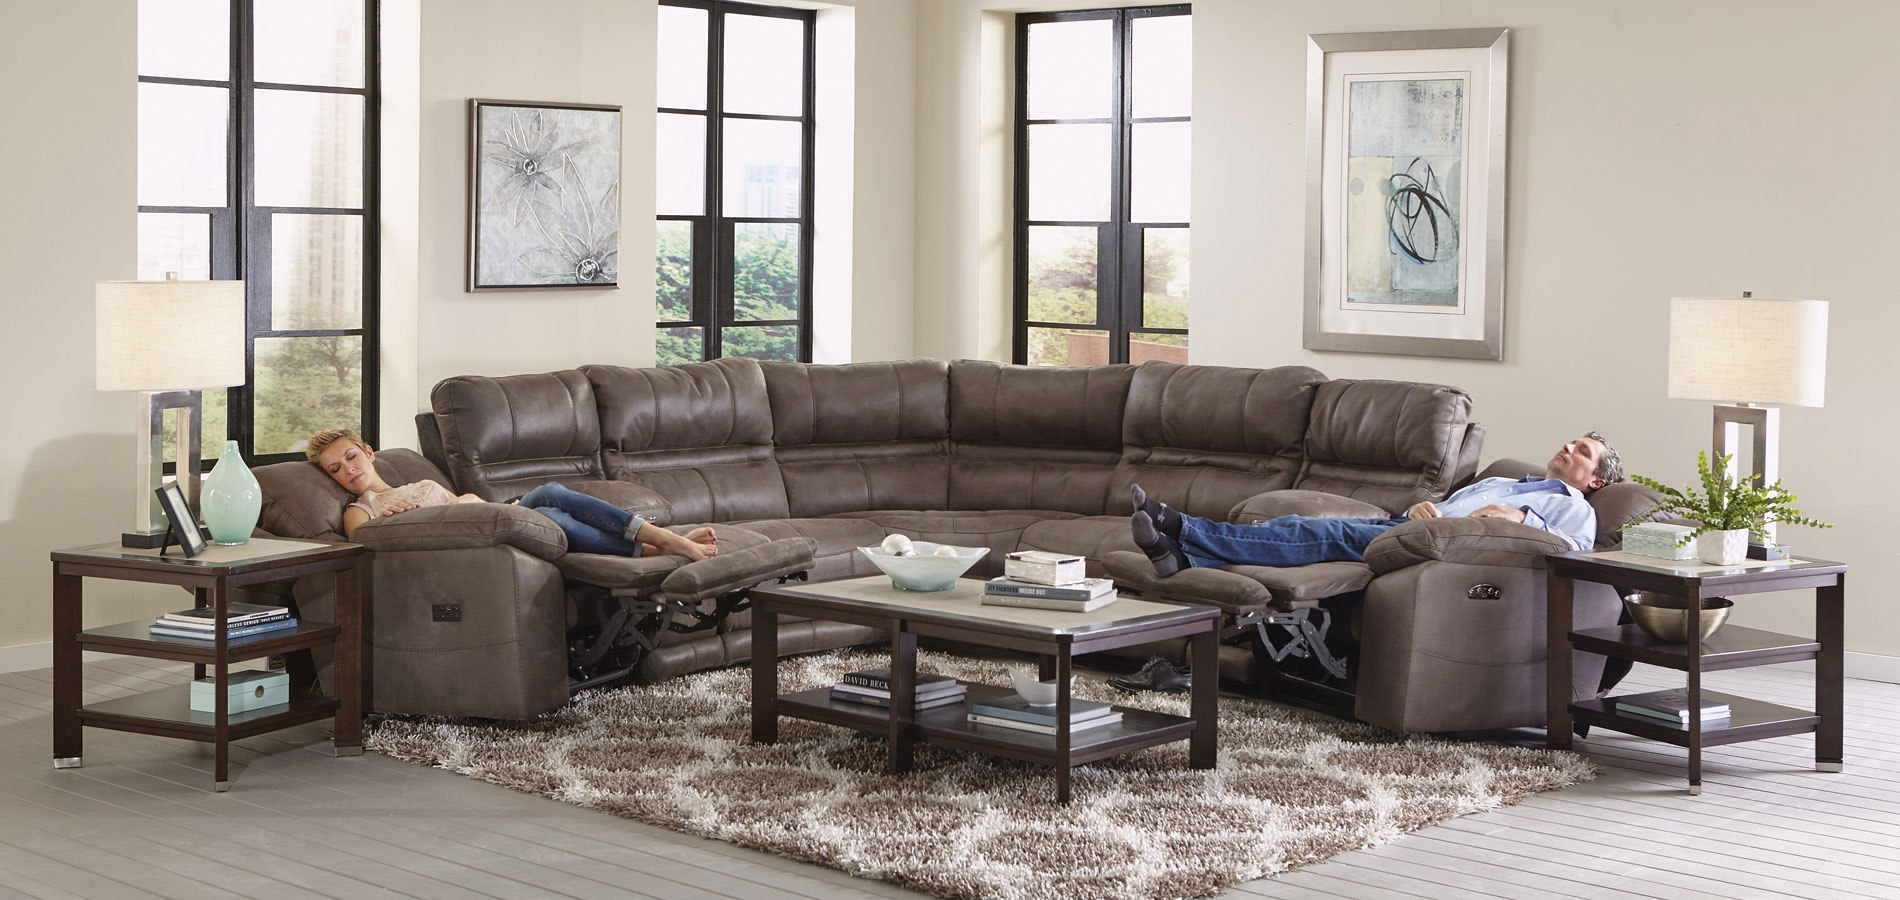 Charmant Braxton Modular Power Reclining Sectional (Charcoal)